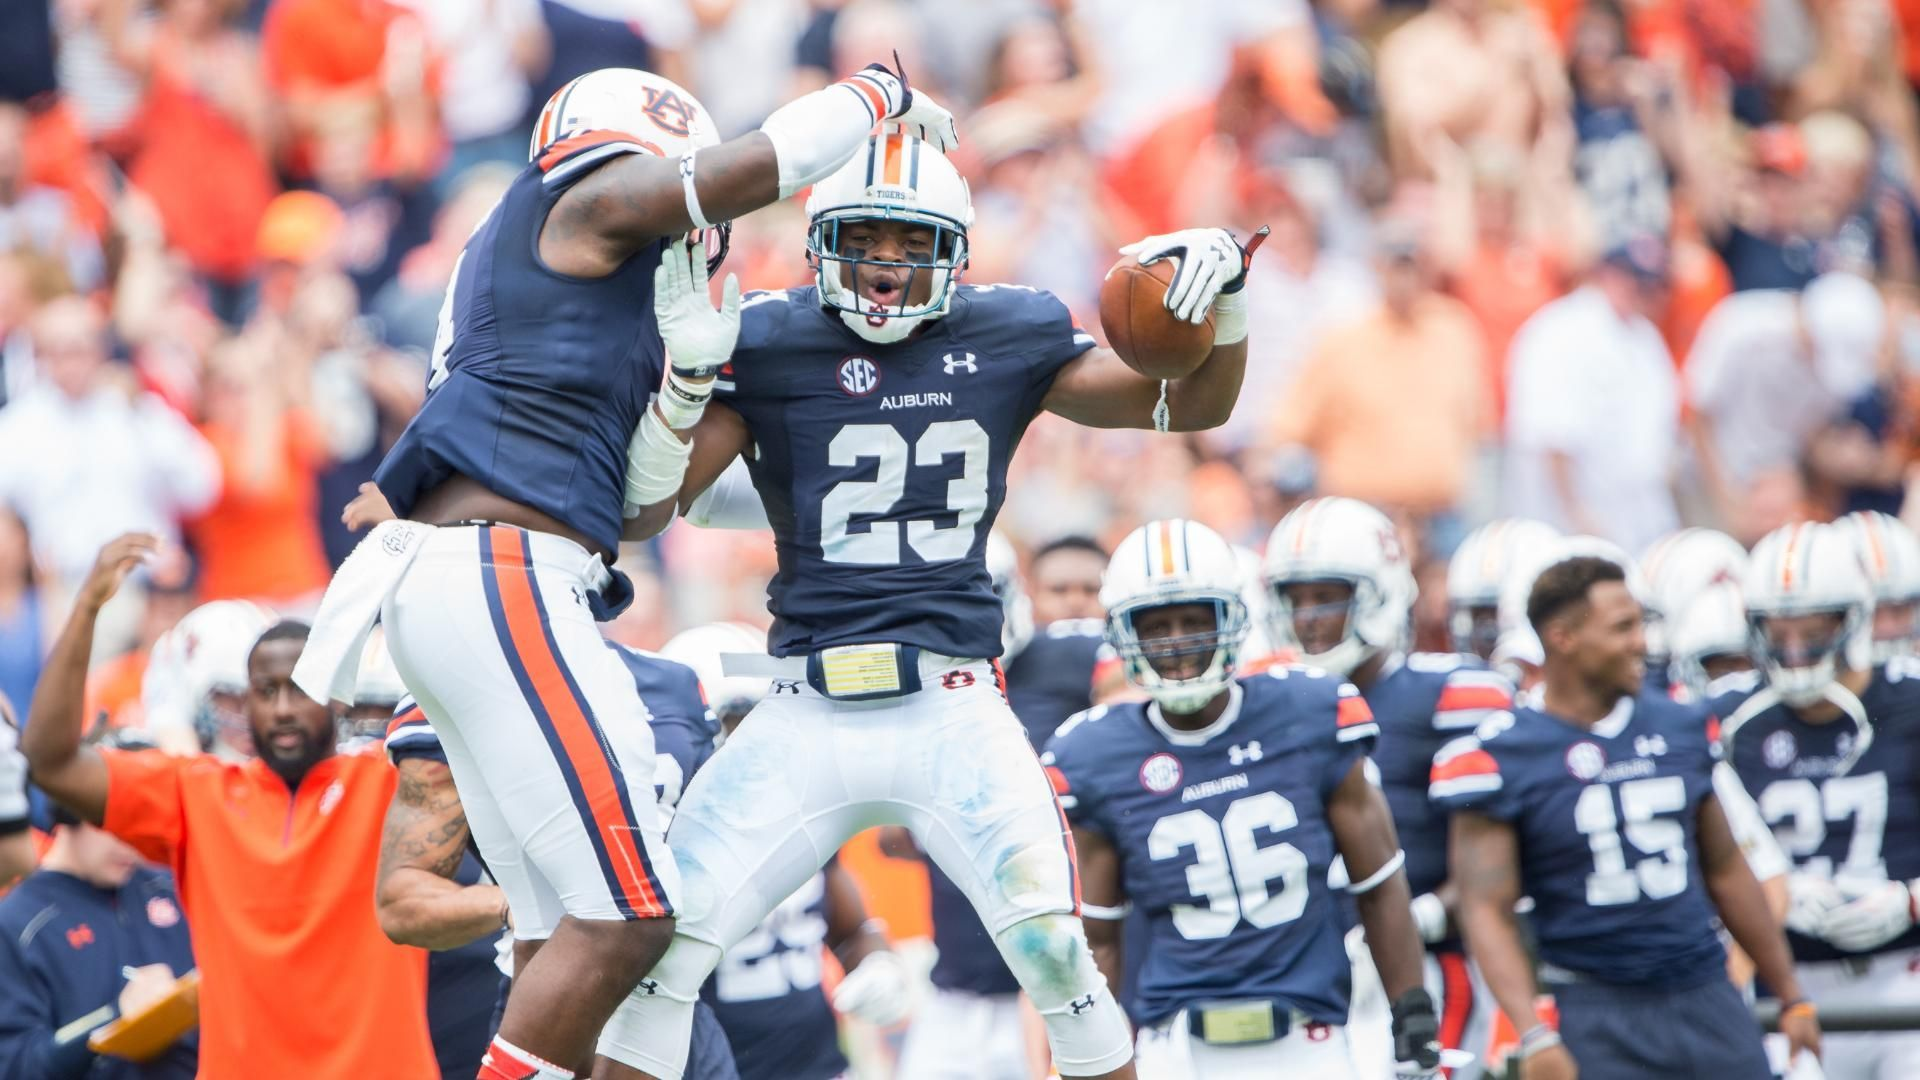 Auburn Survives Scare From Jacksonville State Espn Video Jacksonville State Auburn Football Auburn